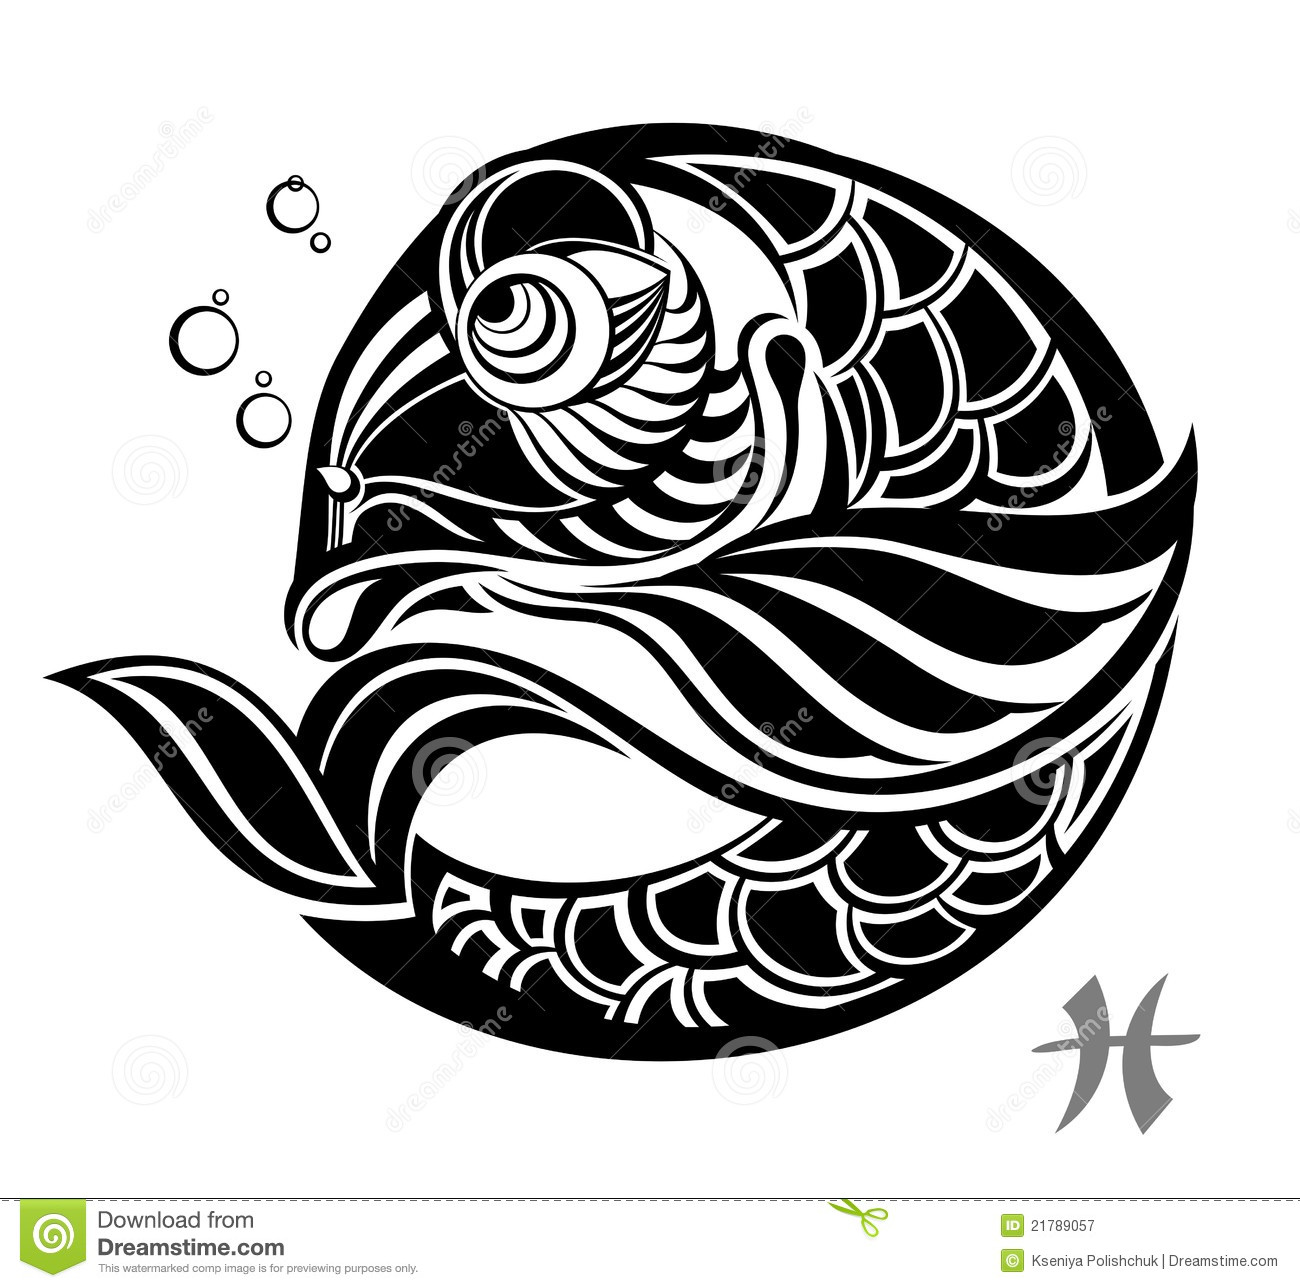 Zodiac signs pisces tattoo design stock vector for Tattoo horoscope signs